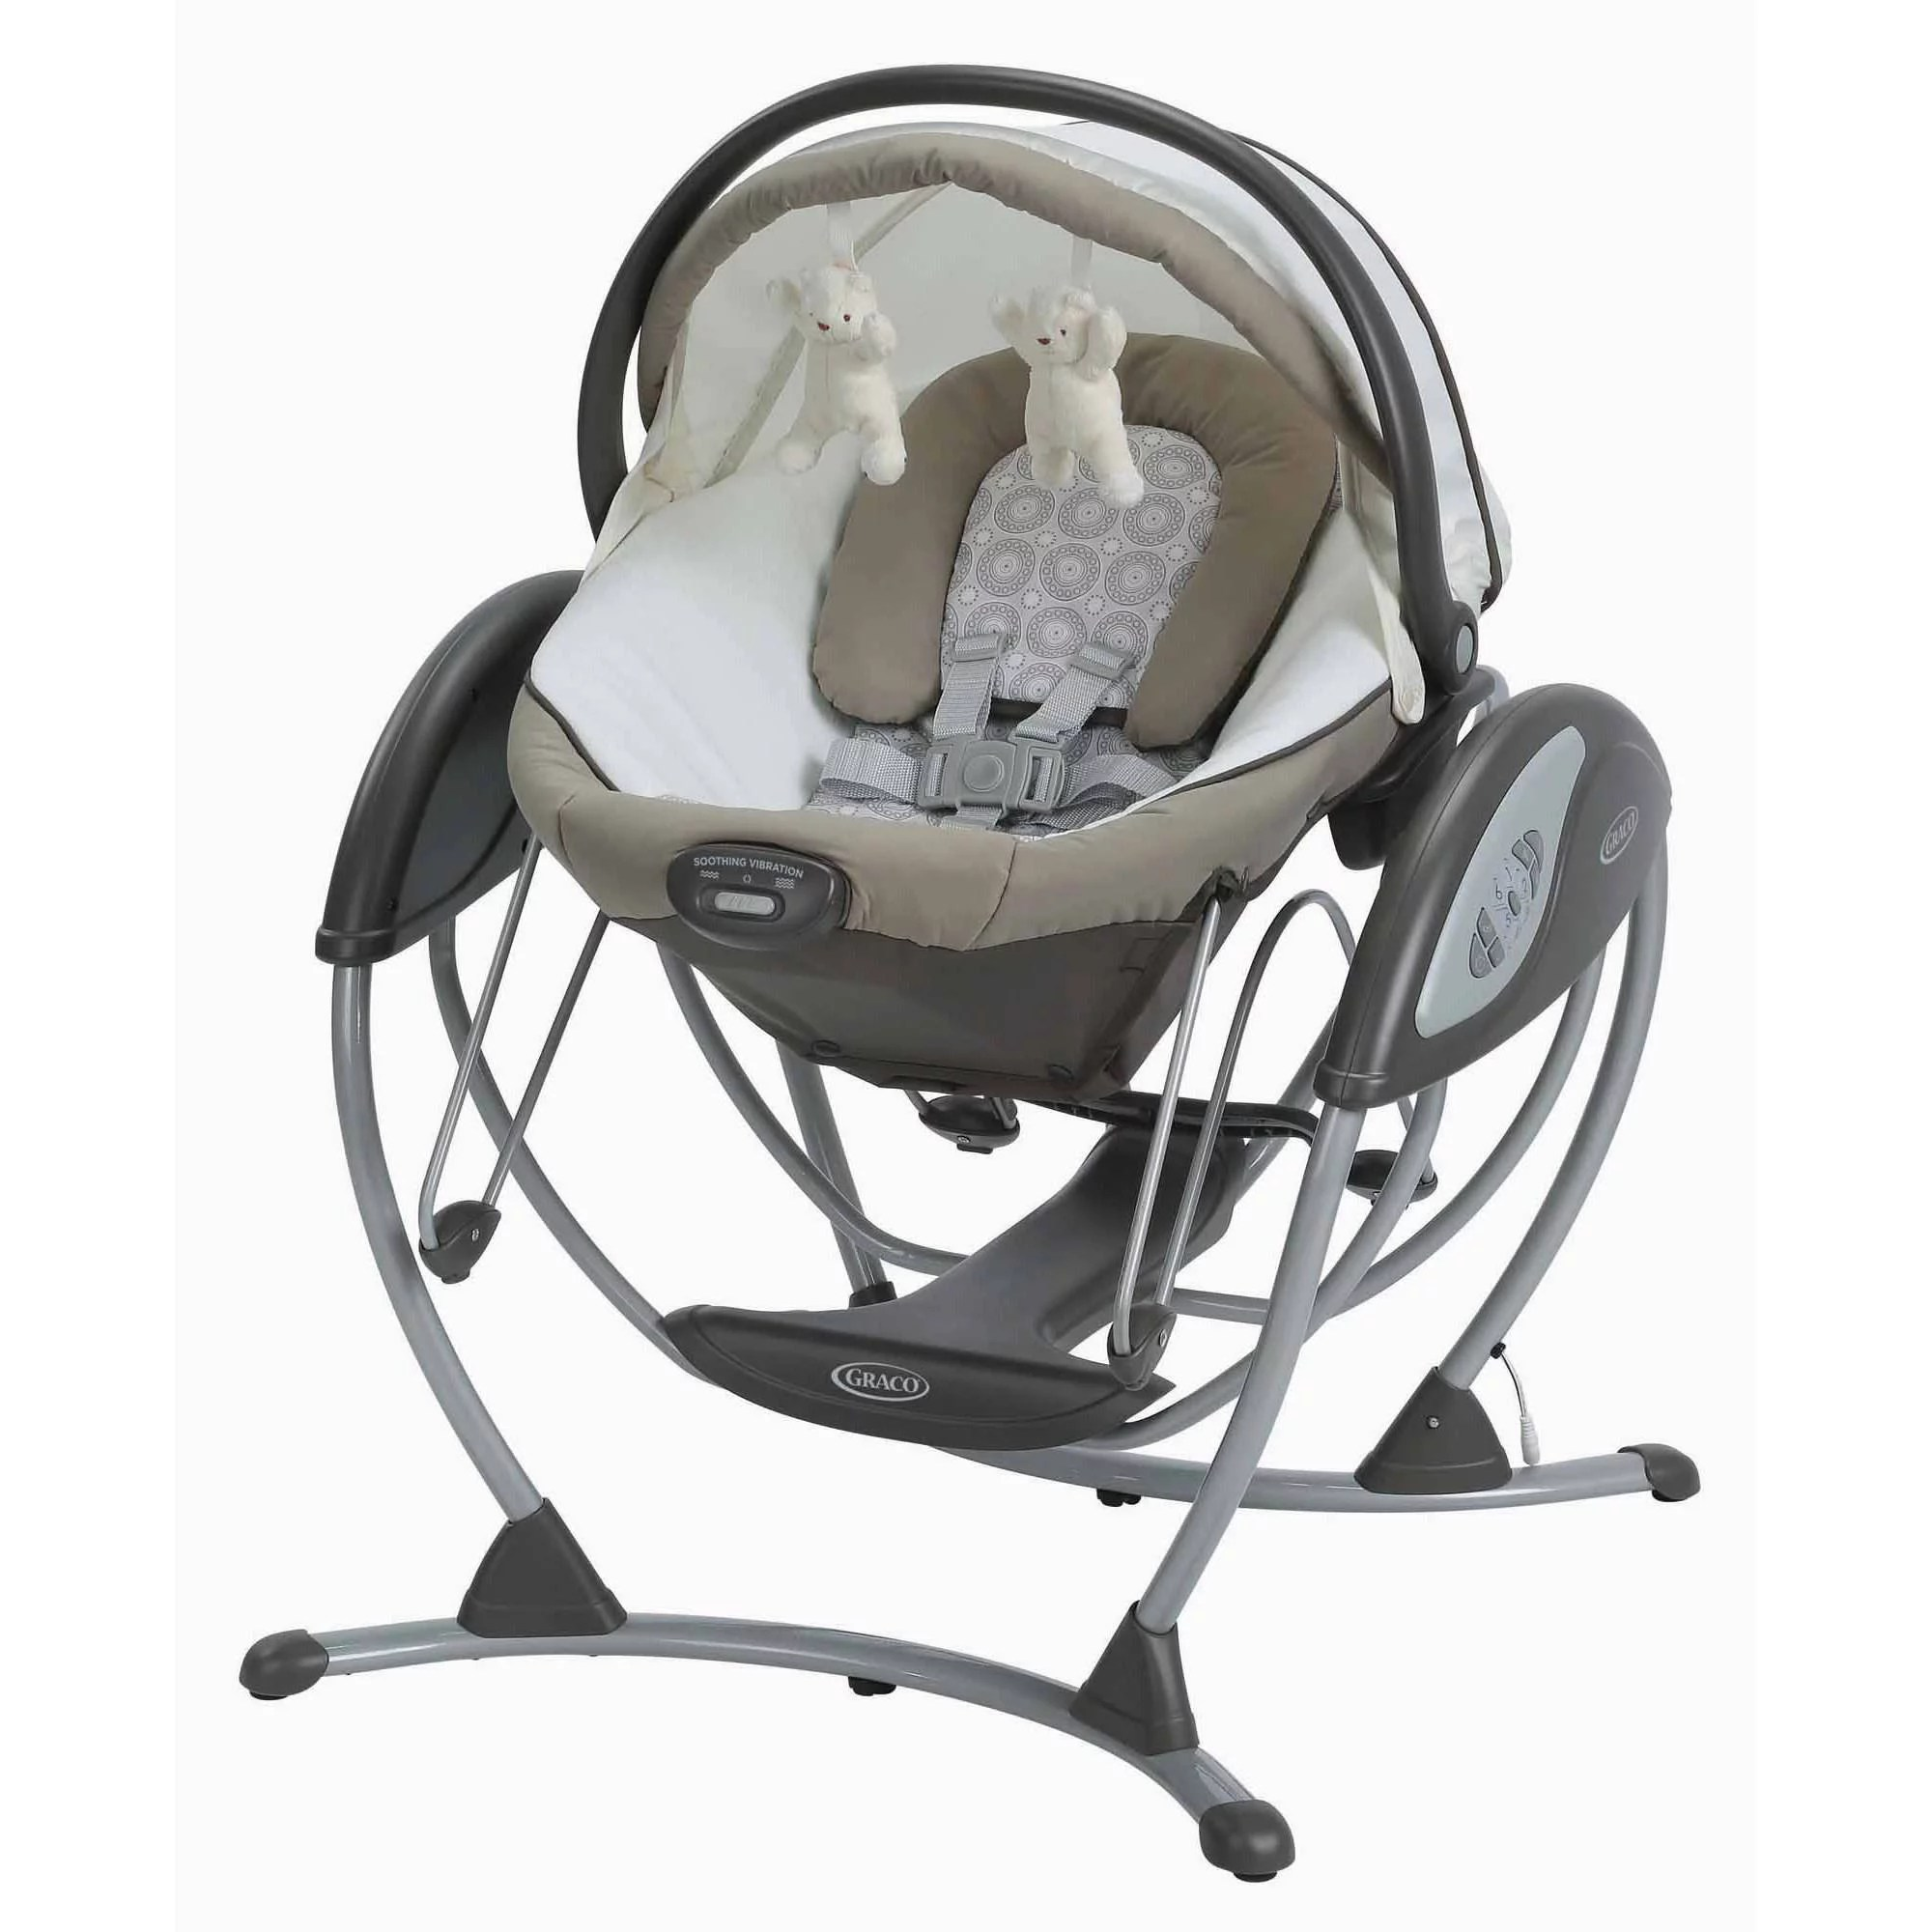 Graco Newborn Bassinet Graco Soothing System Glider Baby Swing Abbington